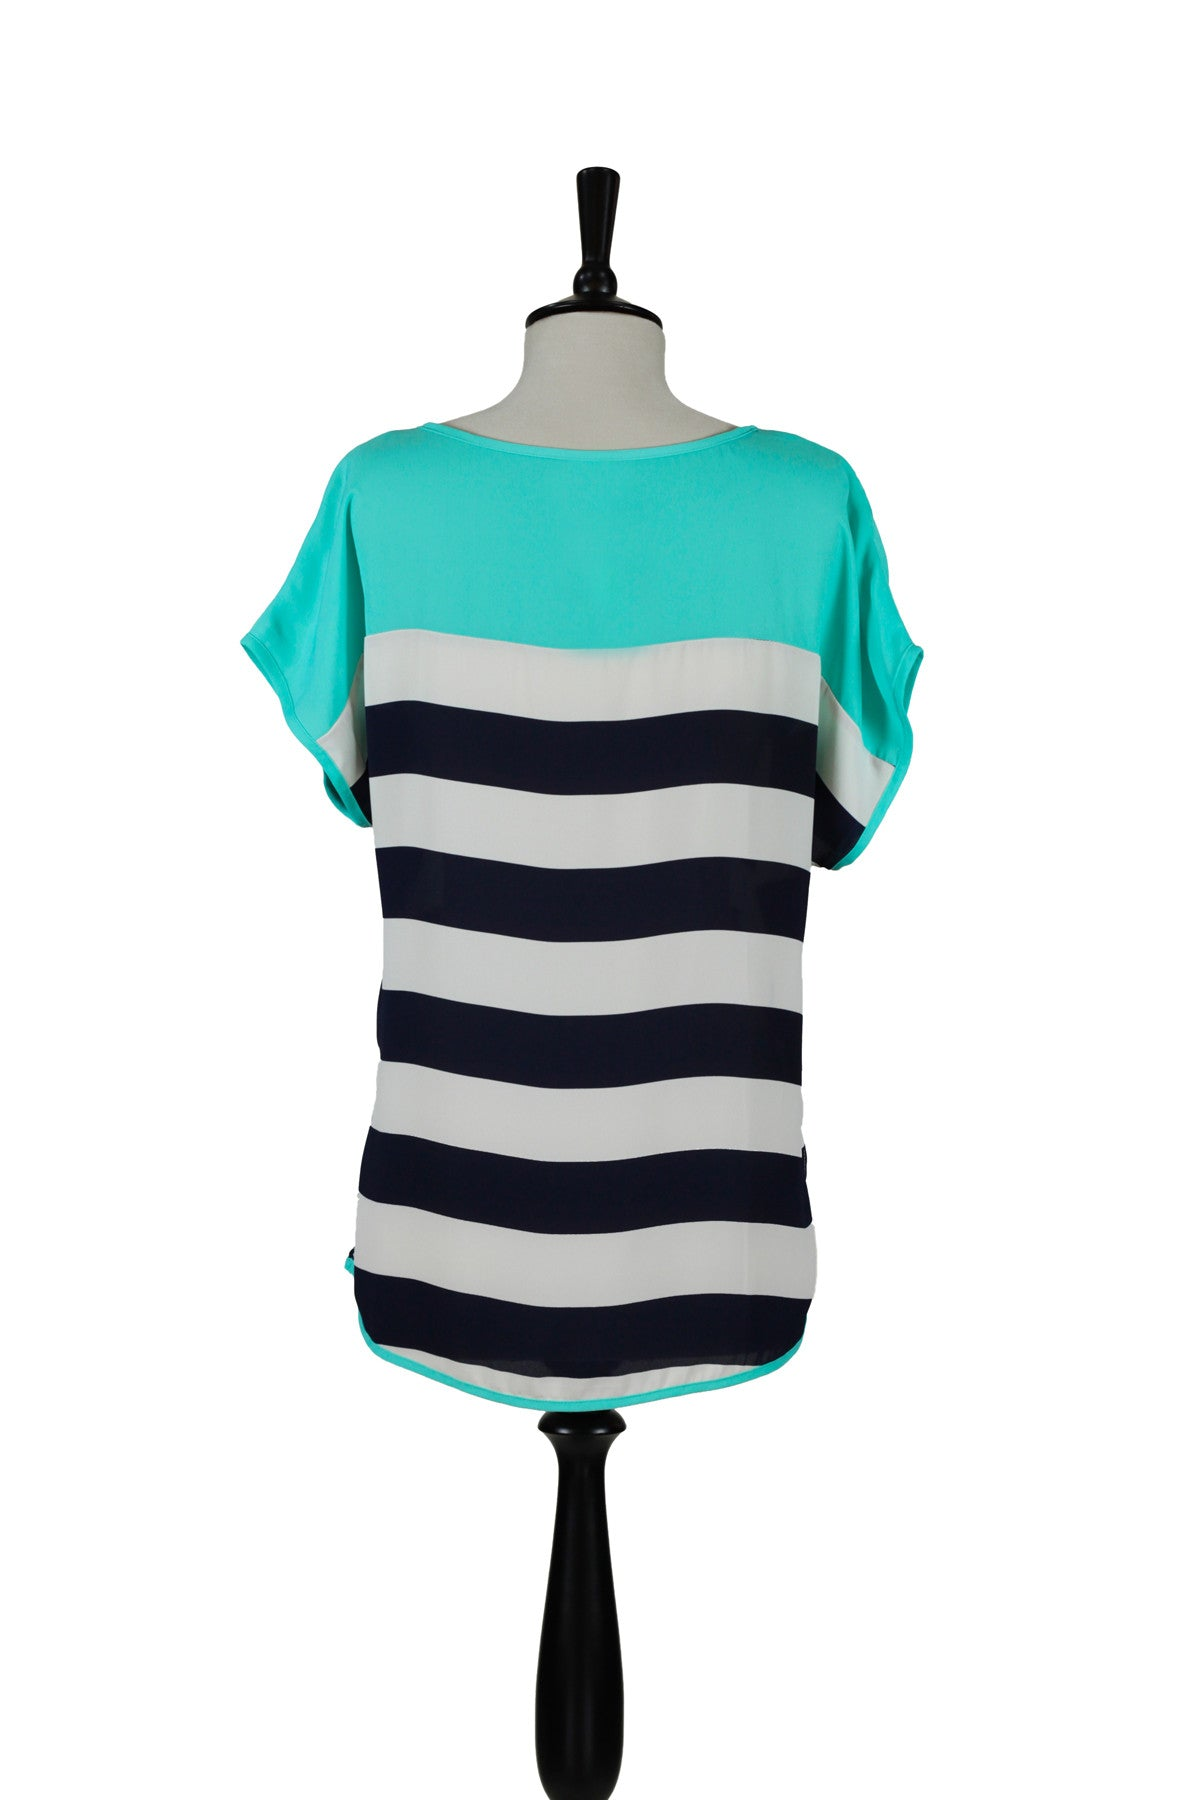 Charlotte Striped Top - Mint